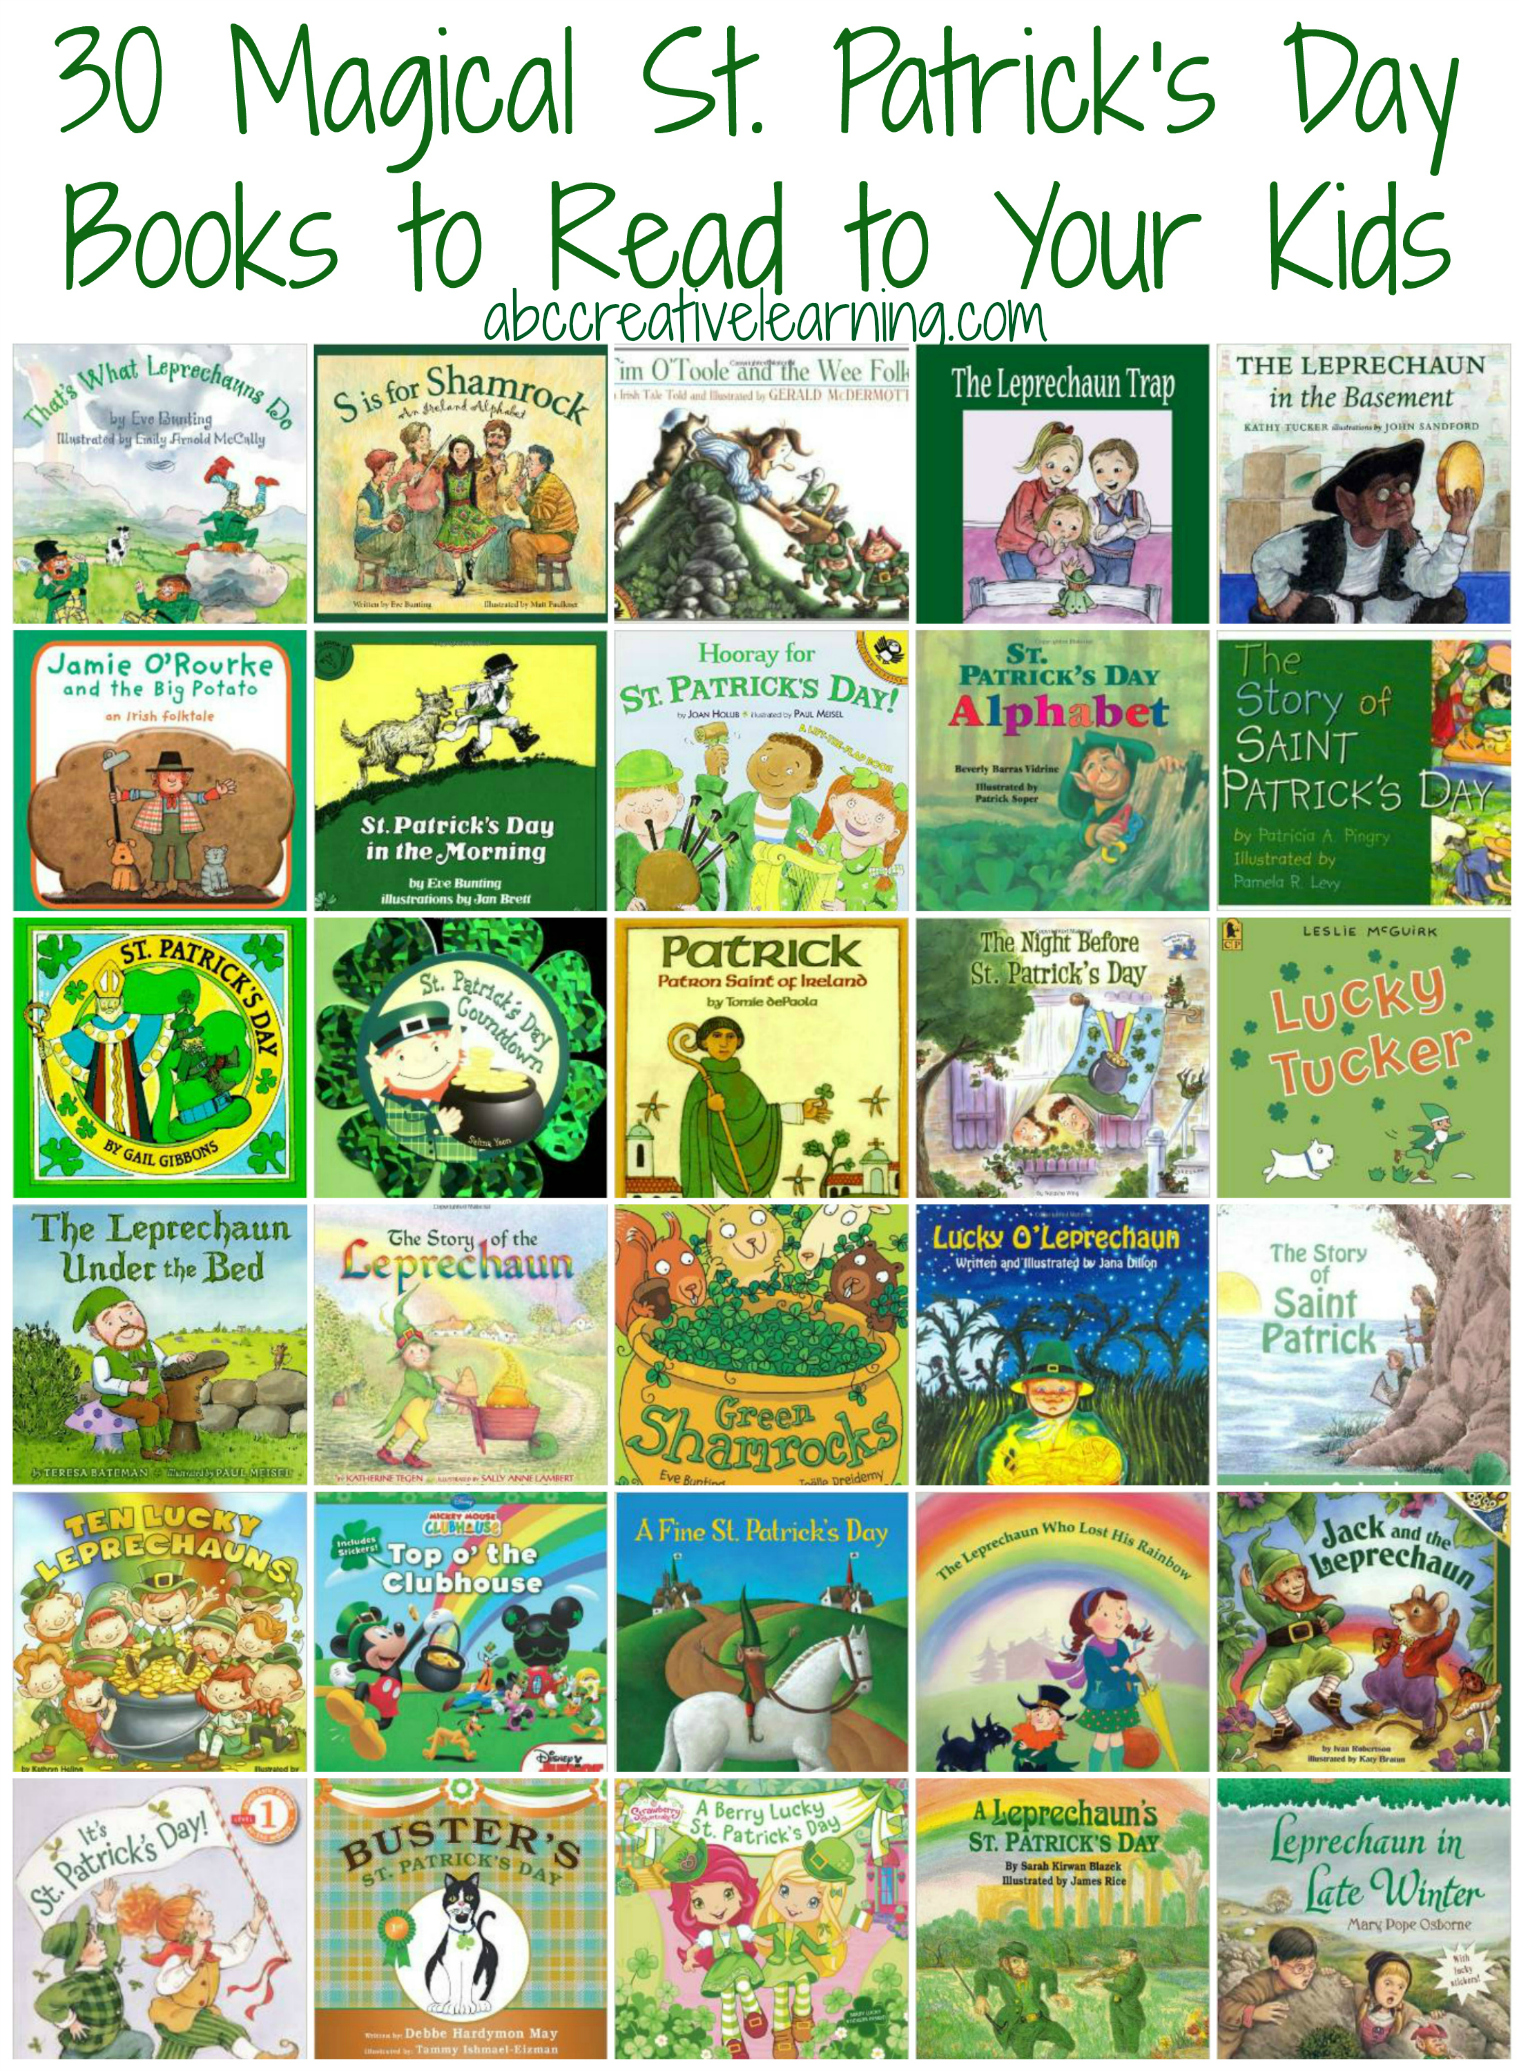 30 Magical St. Patrick's Day Books To Read To Your Kids